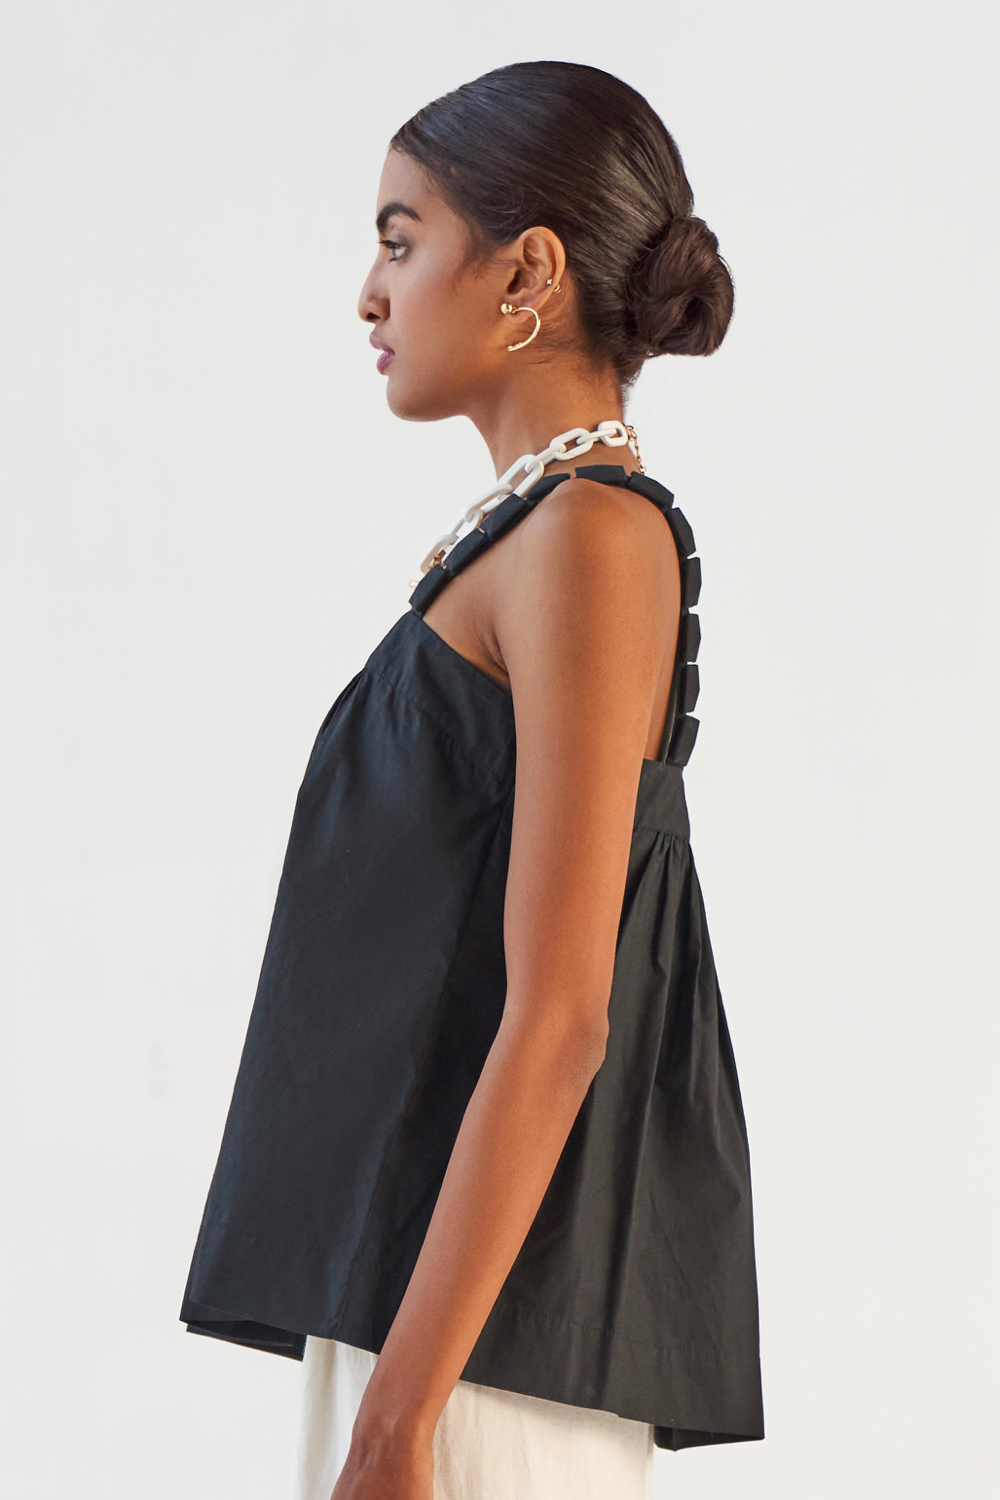 MARRAKESH SOLID BLACK COTTON POPLIN FABRIC TOP WITH FABRIC COVERED SQUARE STONE STRAPS